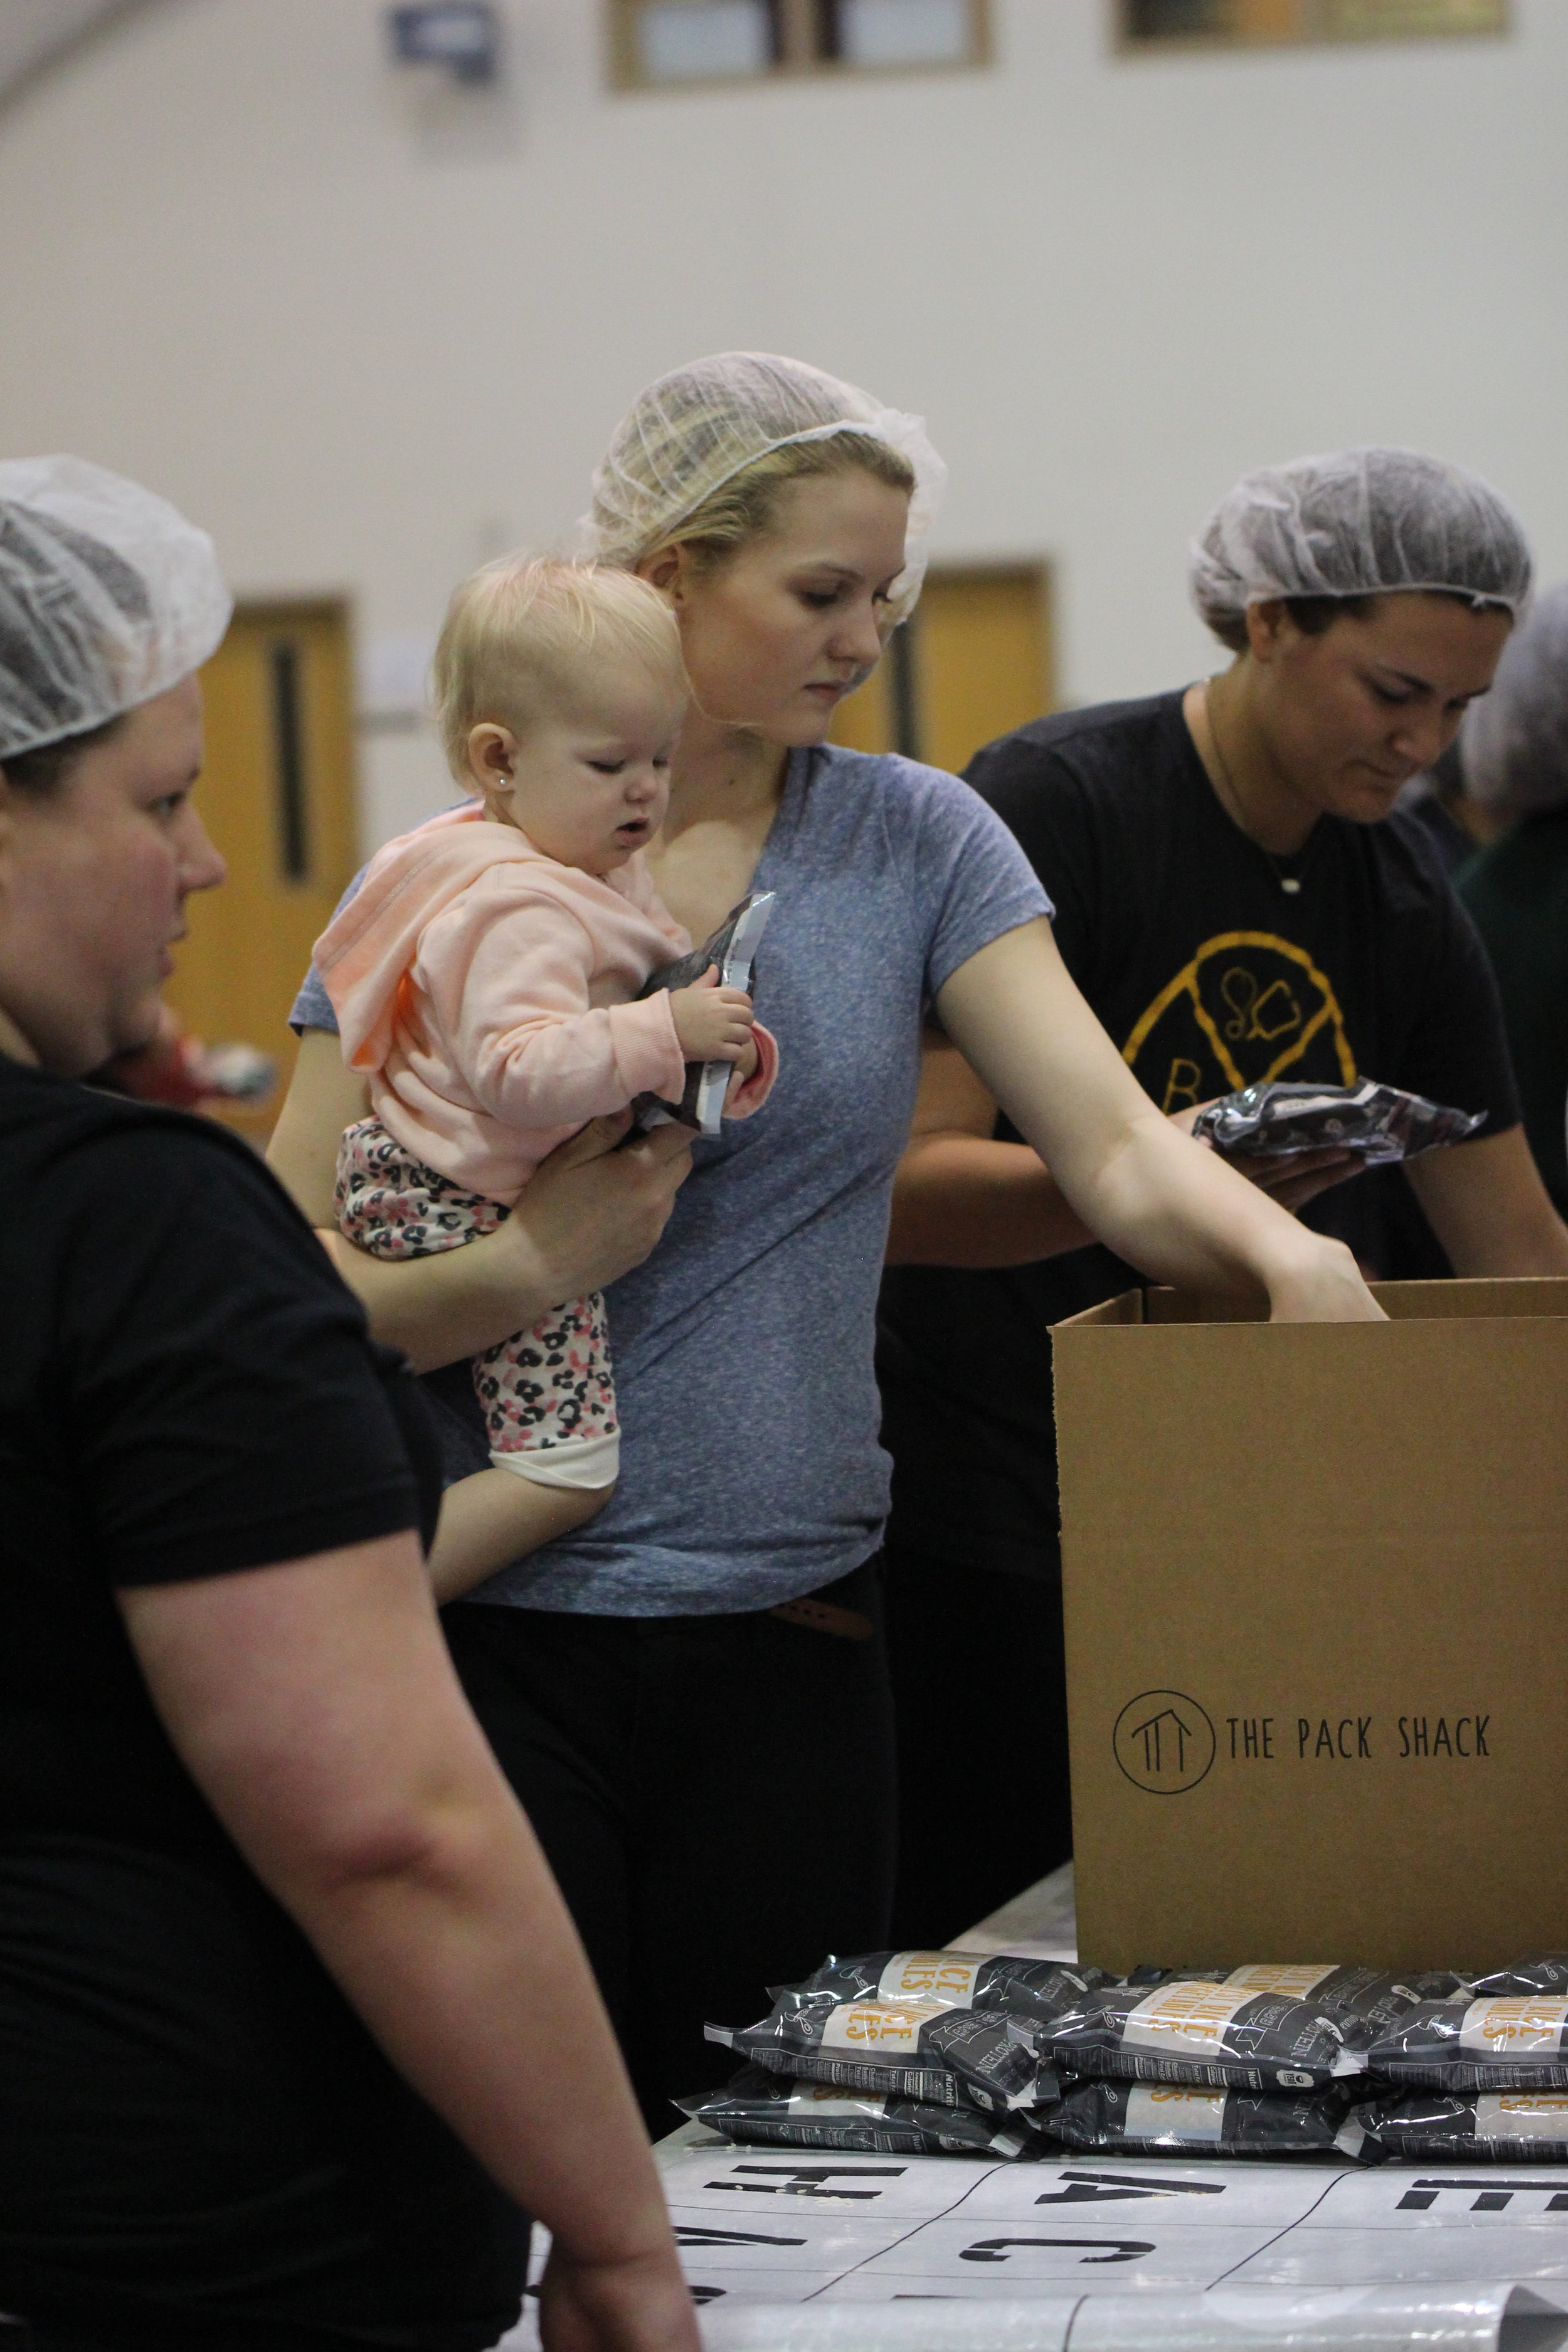 Cody Thorn/Citizen photo Park volleyball player Maren Mair, a Platte County graduate, was one of many volunteers and got a helping hand from her 13-month-old daughter Avi.